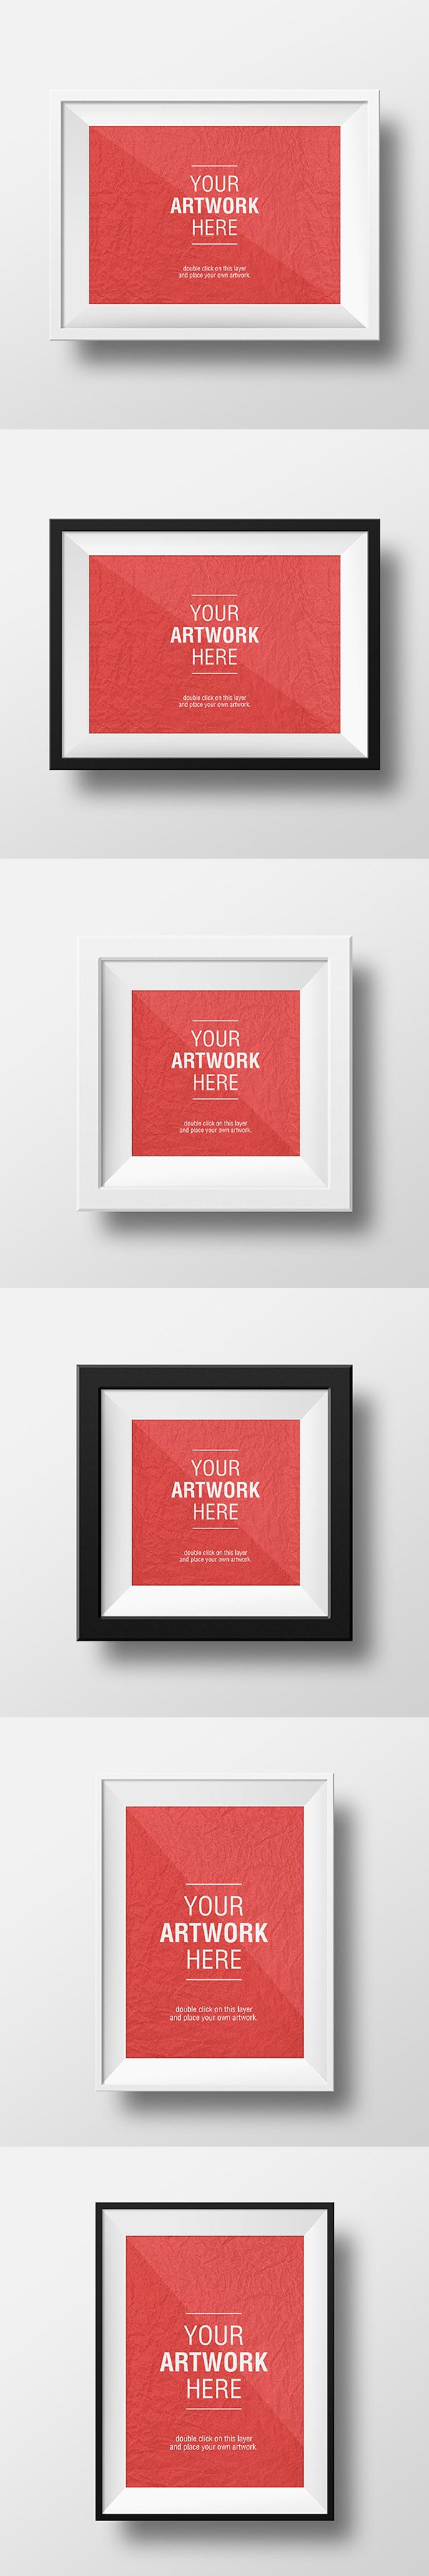 These super clean frame mock-ups will let you showcase your artwork in style. You can choose from 3 different frame sizes...